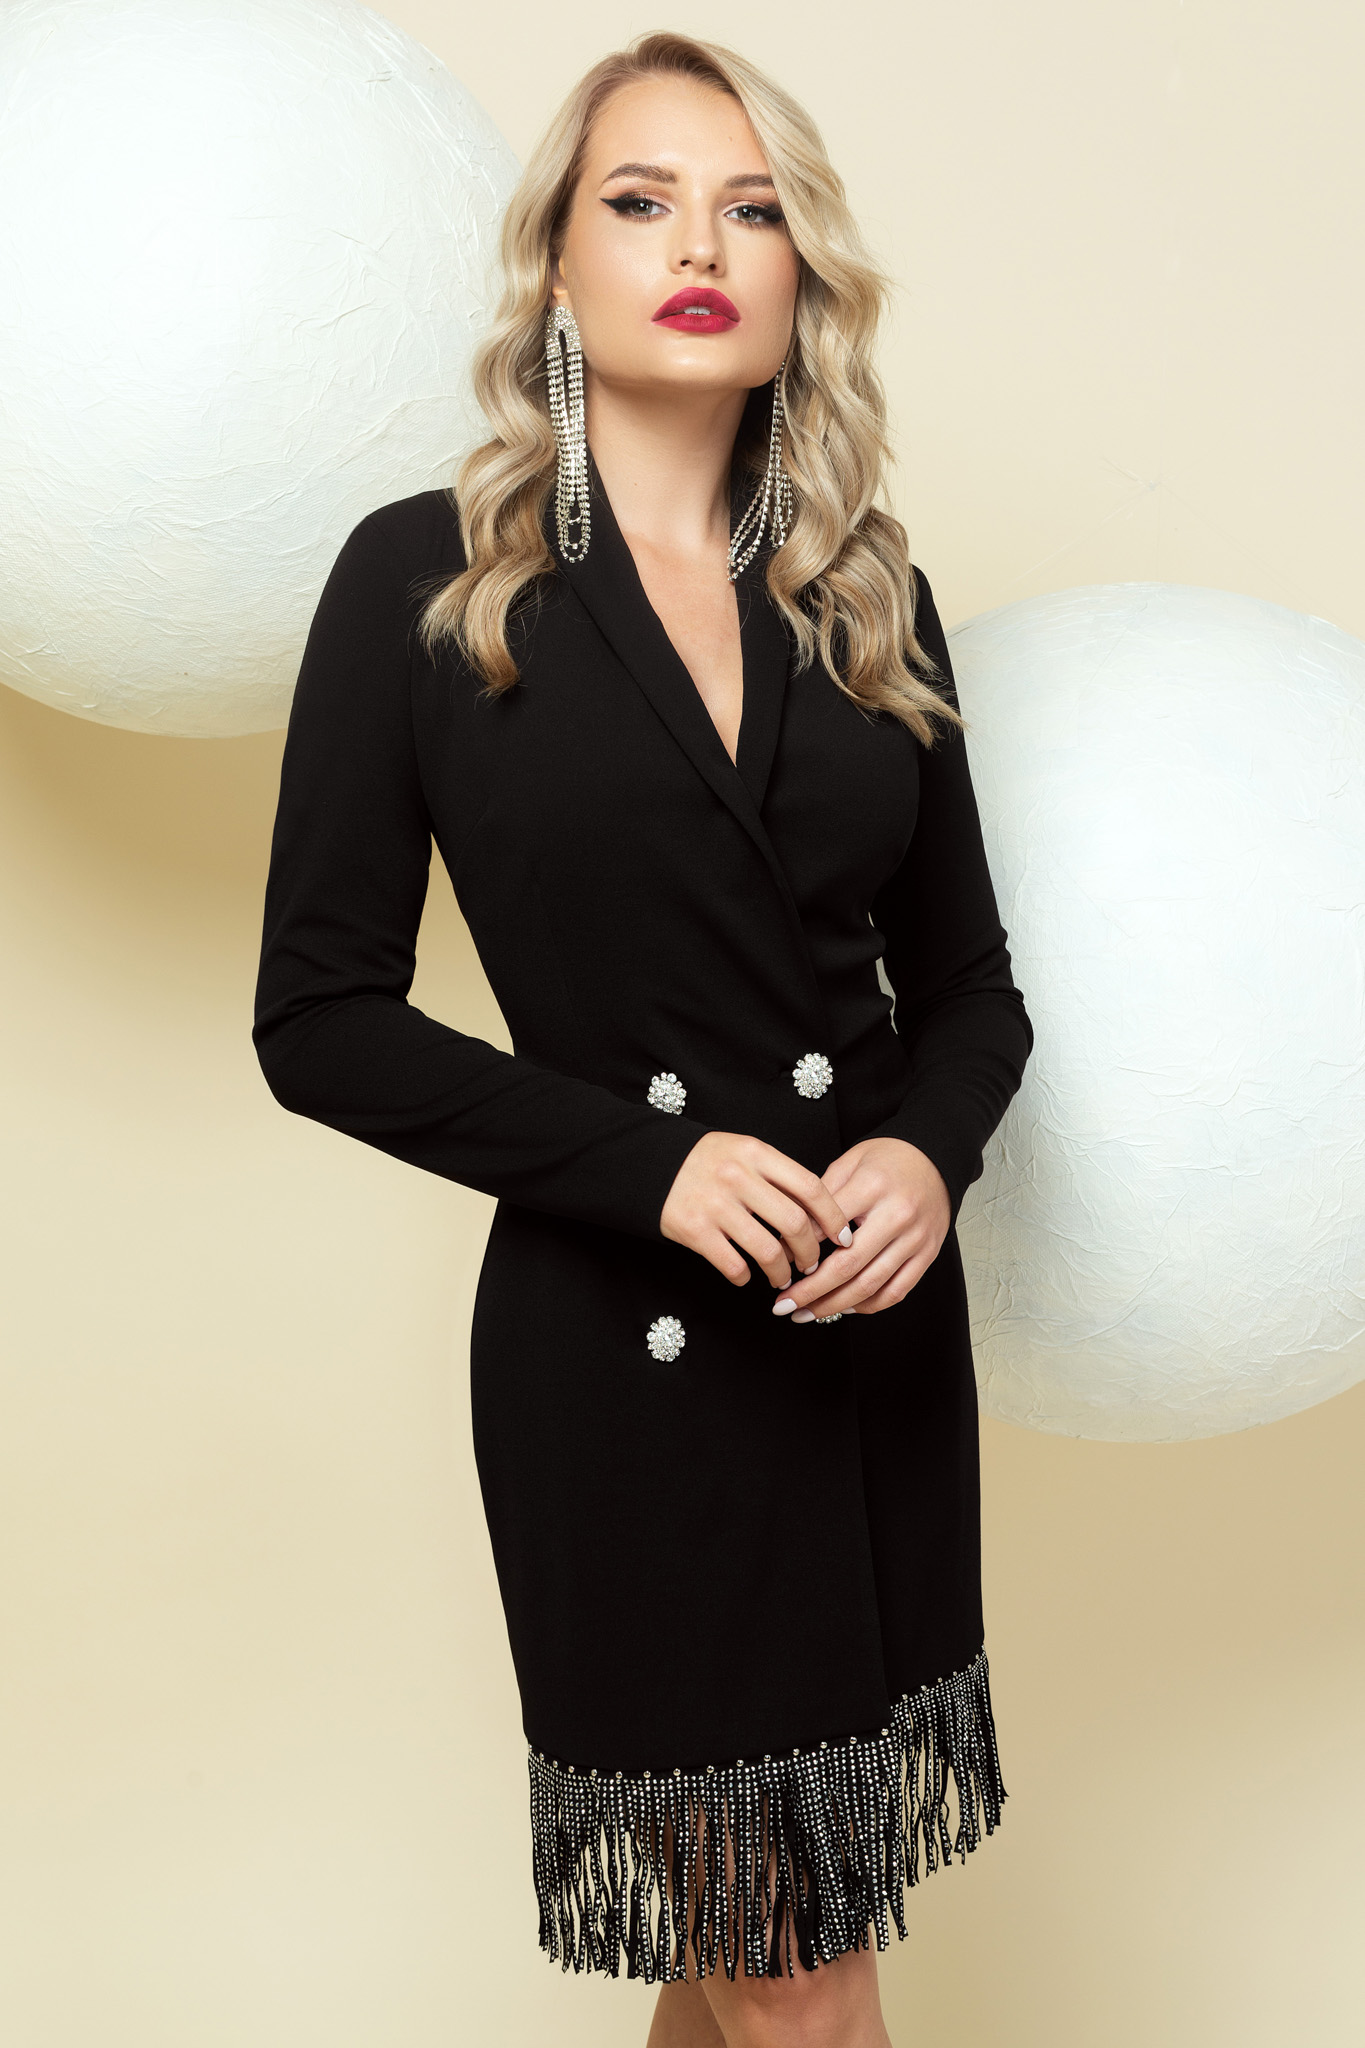 Dress blazer type black short cut occasional with fringes